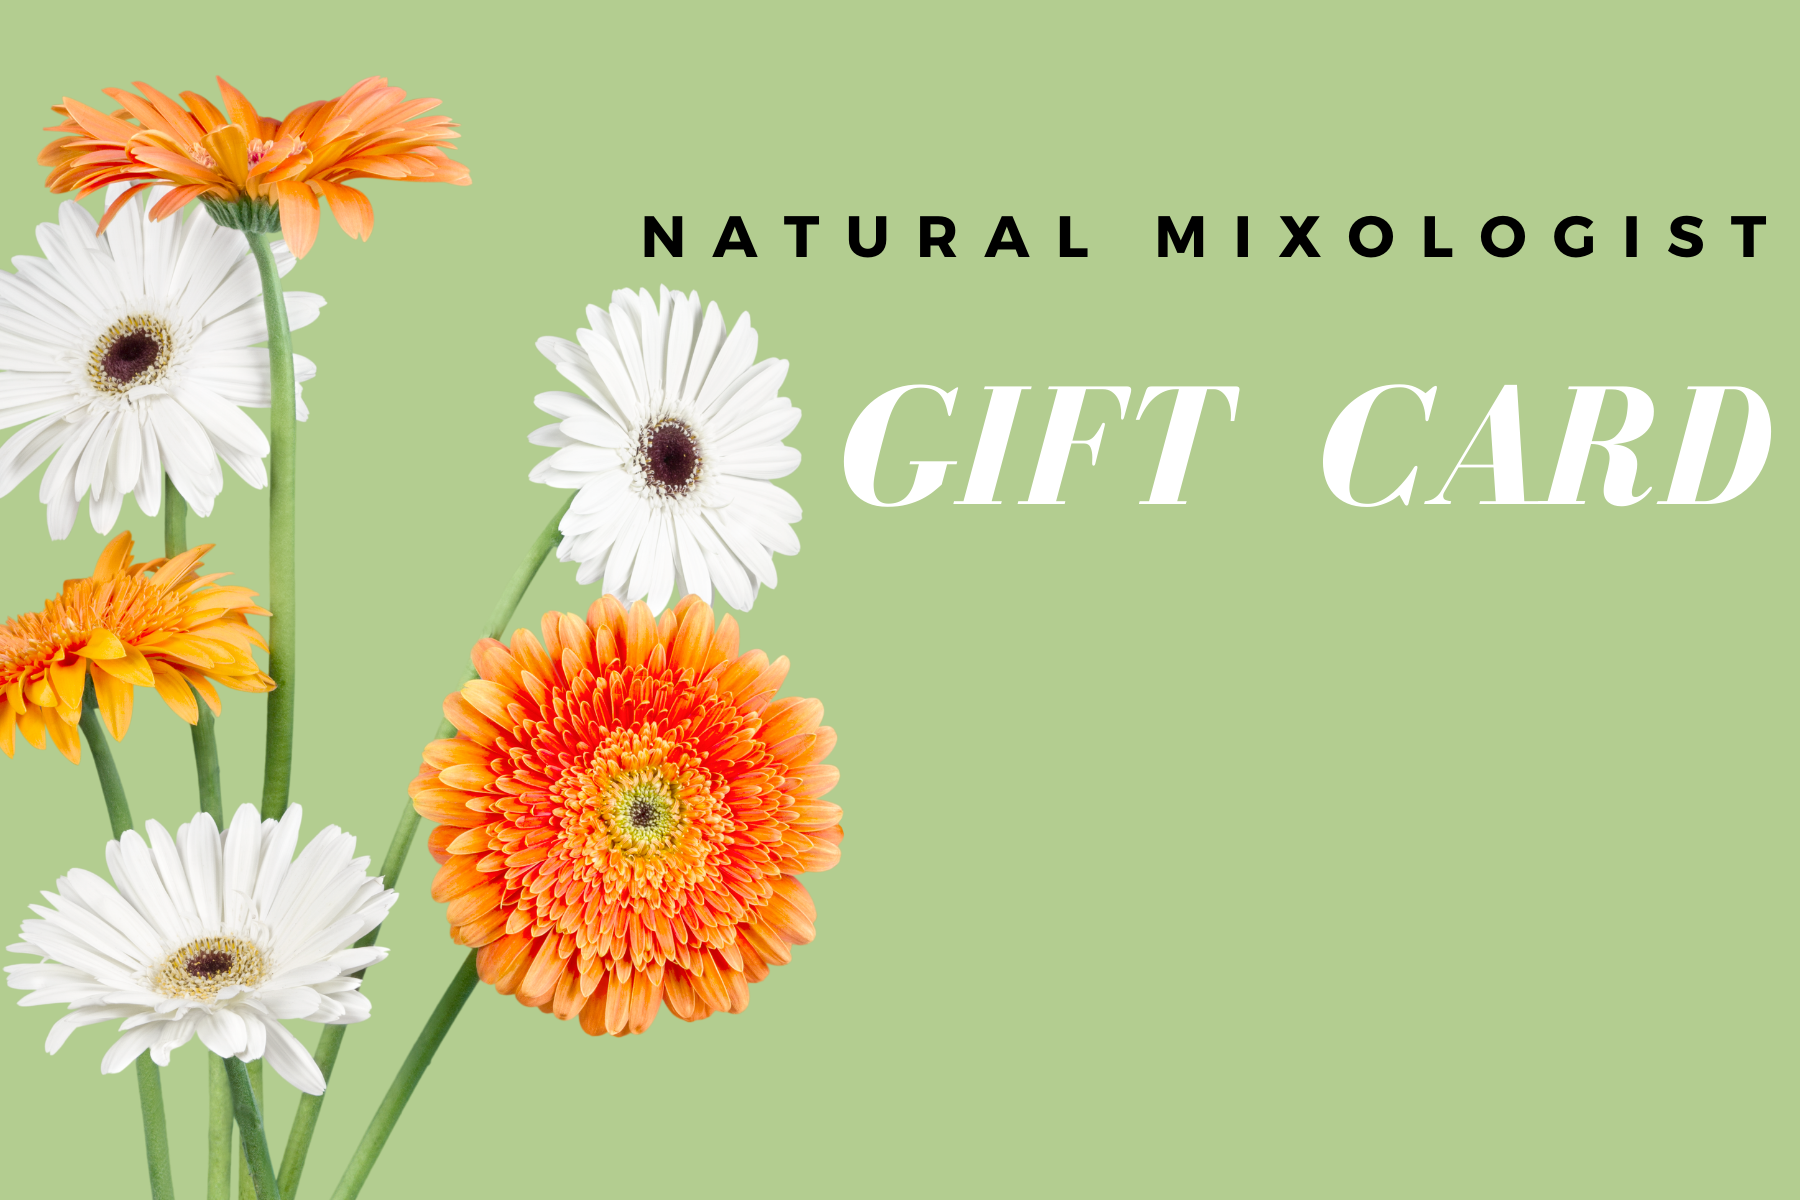 Natural Mixologist Gift Card